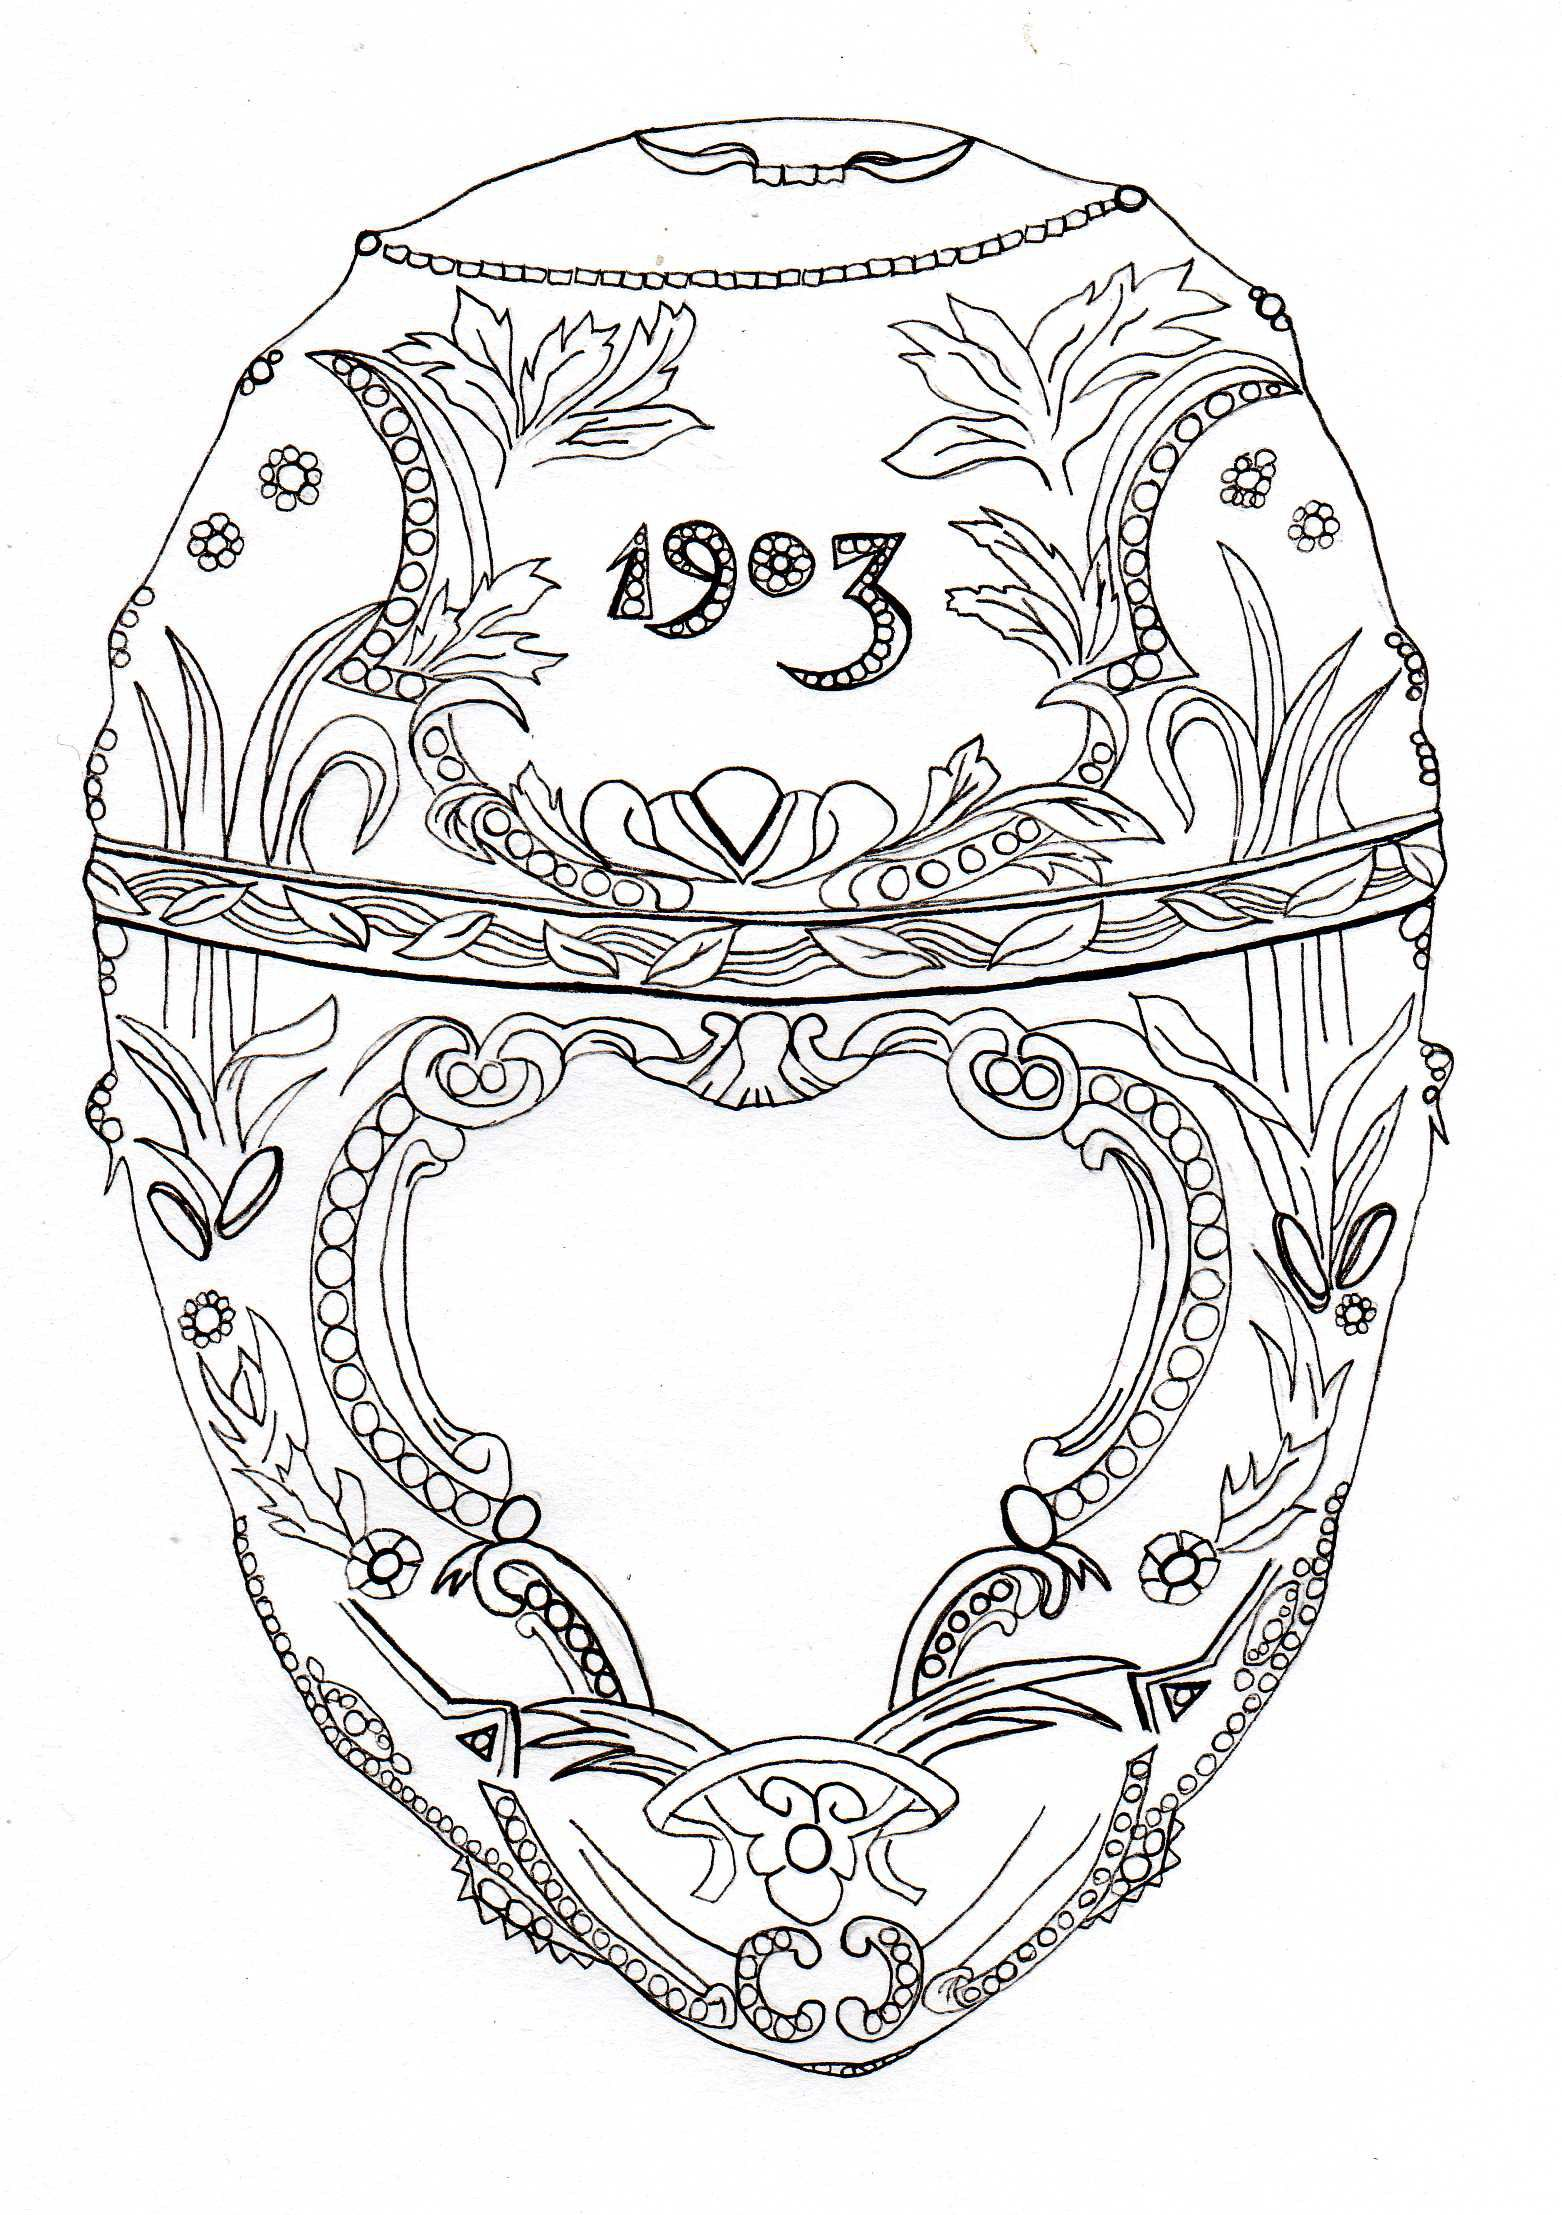 The Faberge Project Coloring Pages Faberge Egg Art